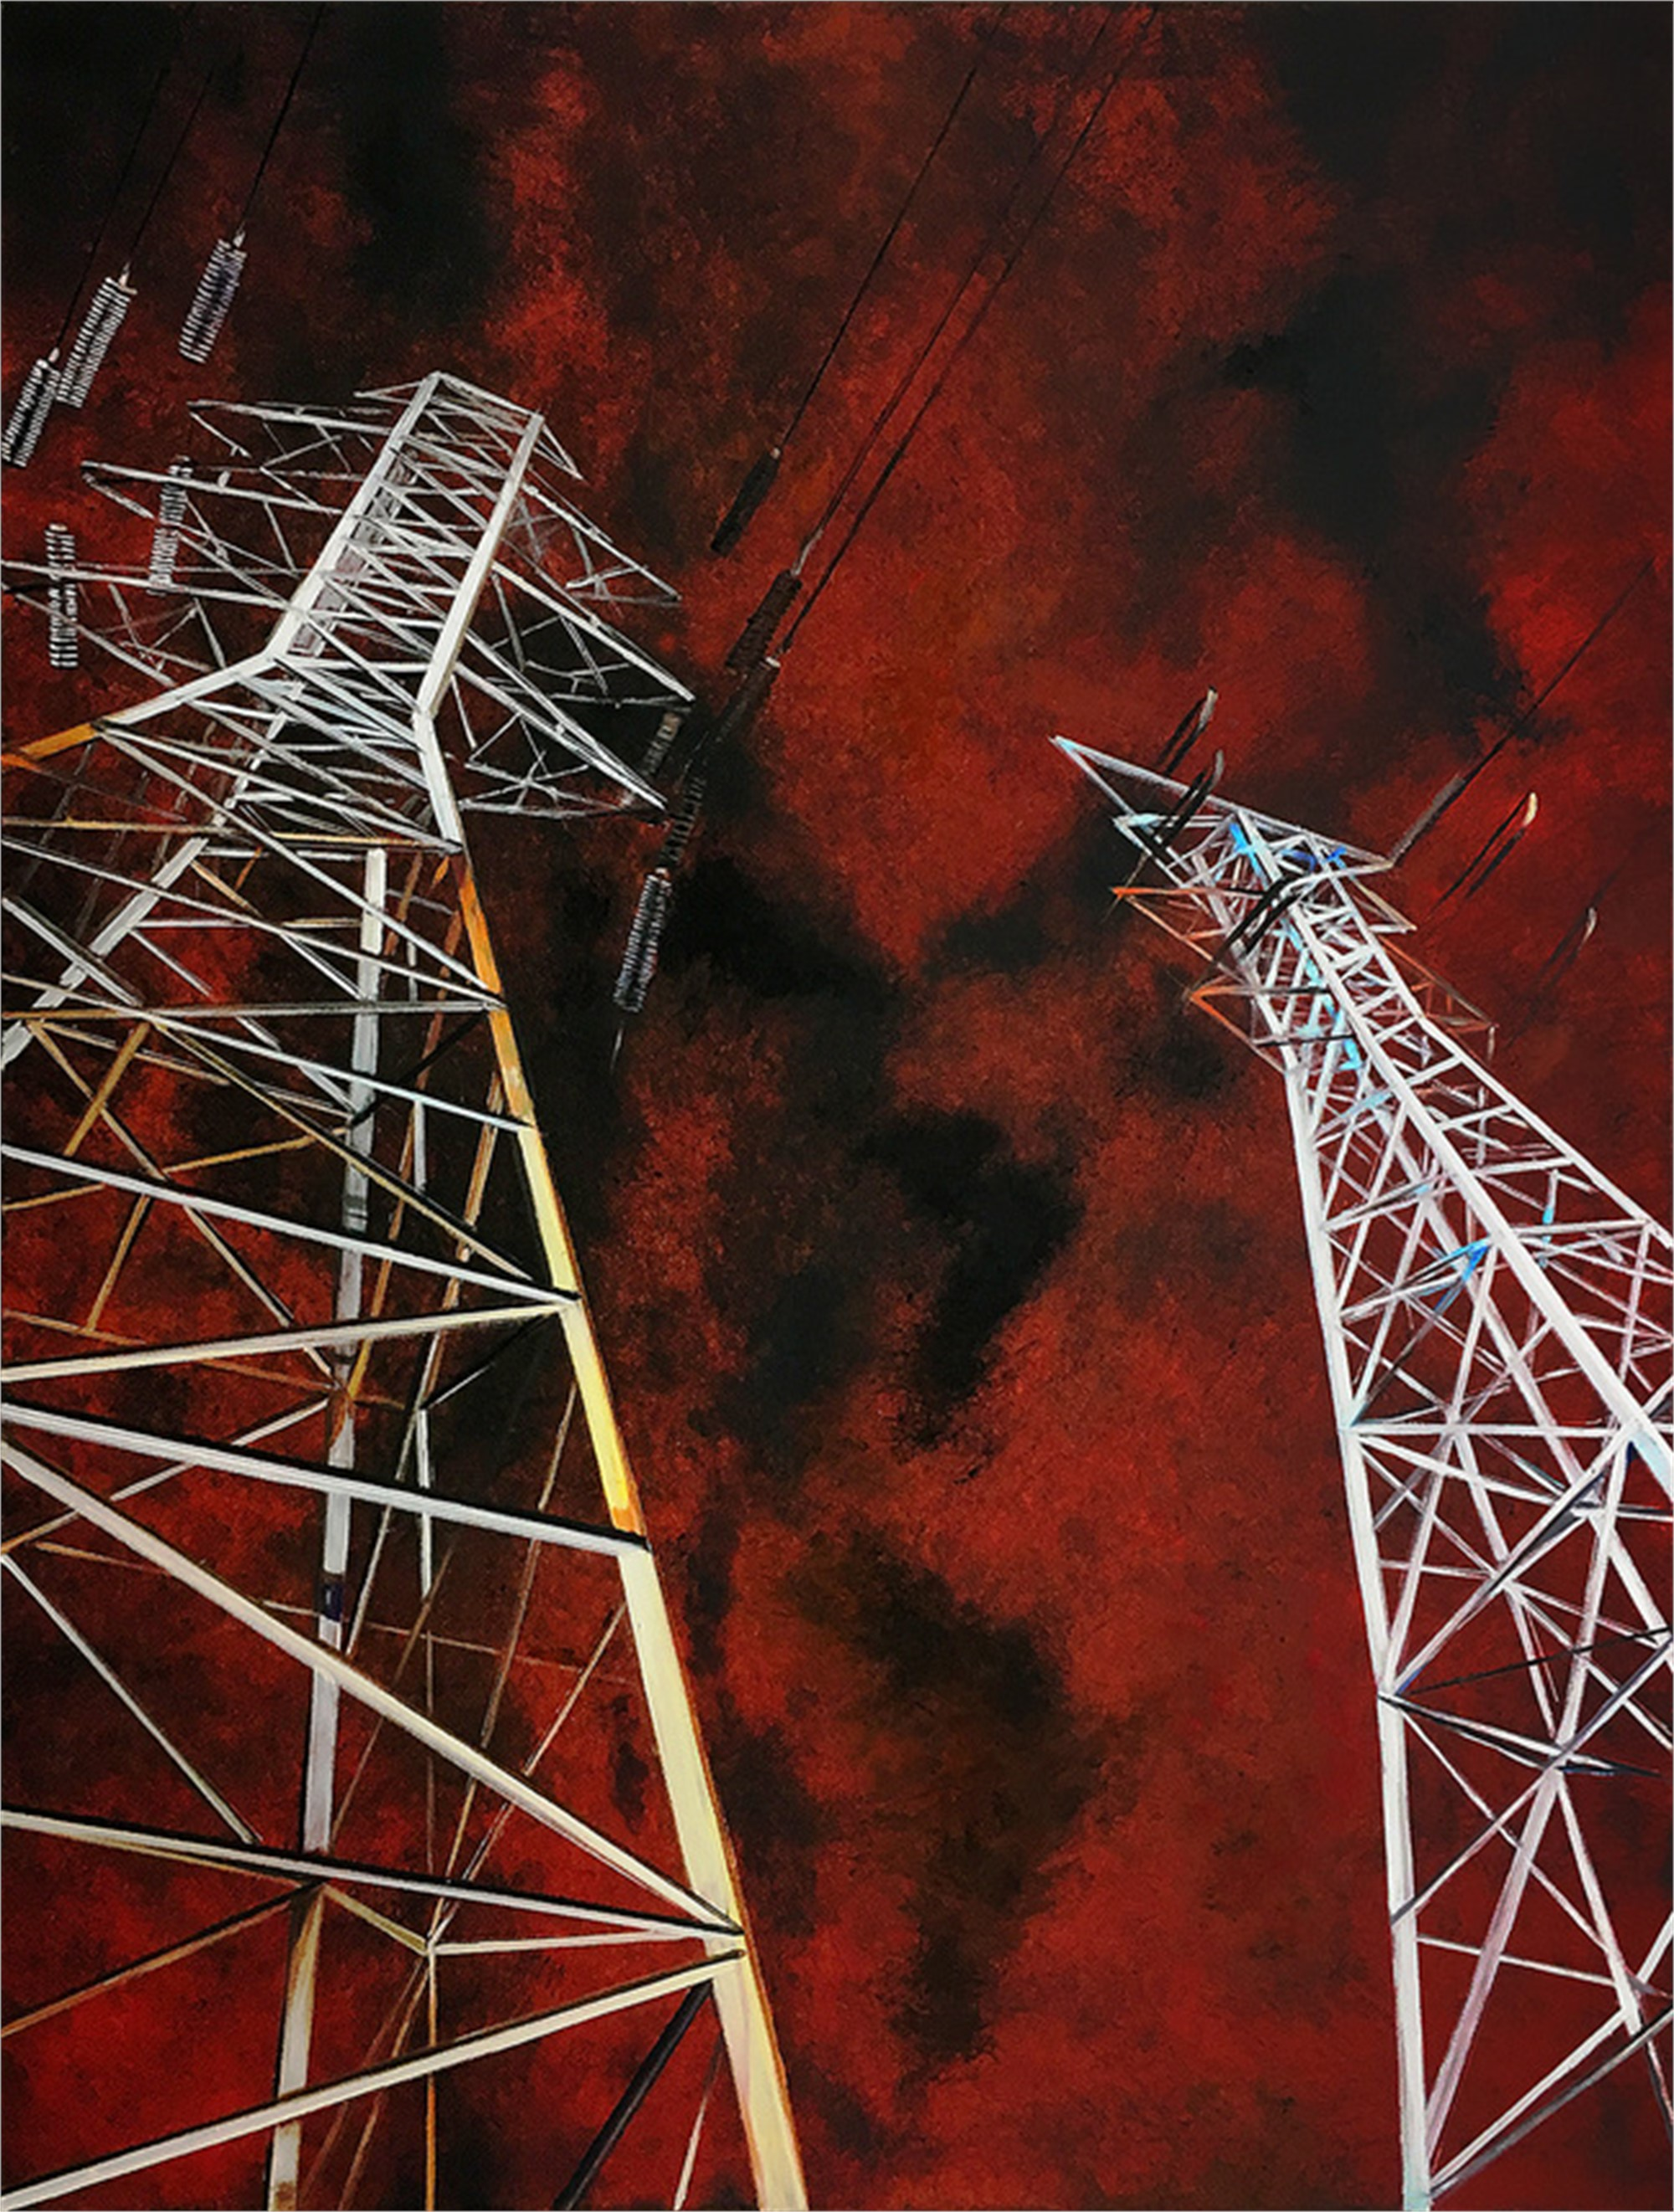 Towers on a Menacing Sky by Allan Gorman